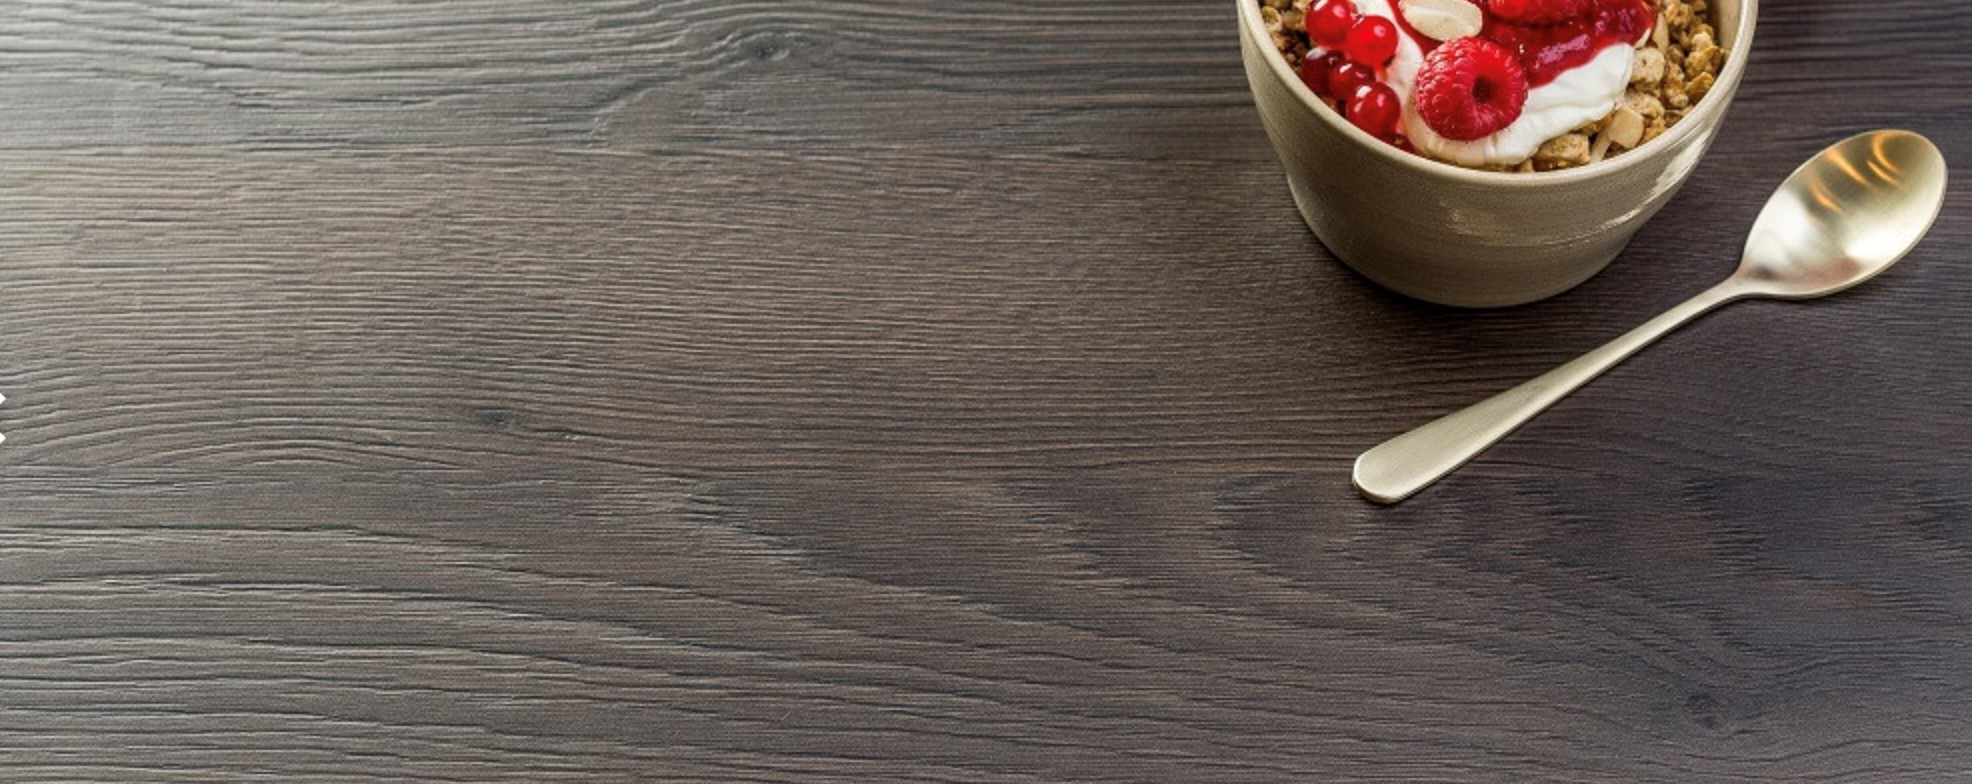 Feelwood's Anthracite Mountain Larch decor accentuates the classic warm rustic feel.